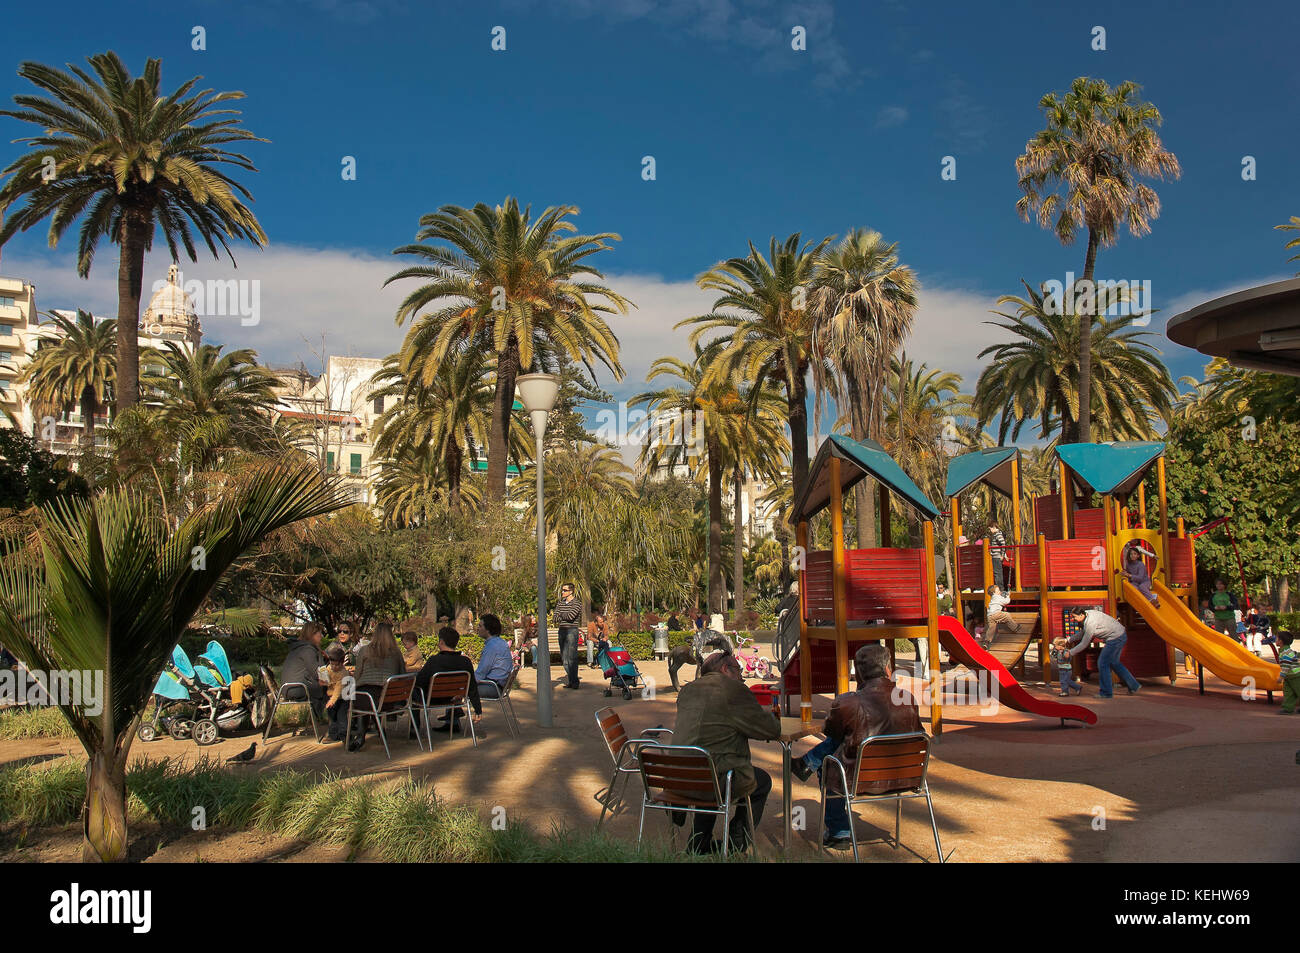 Alameda Park - terrace bar and playground, Malaga, Region of Andalusia, Spain, Europe - Stock Image